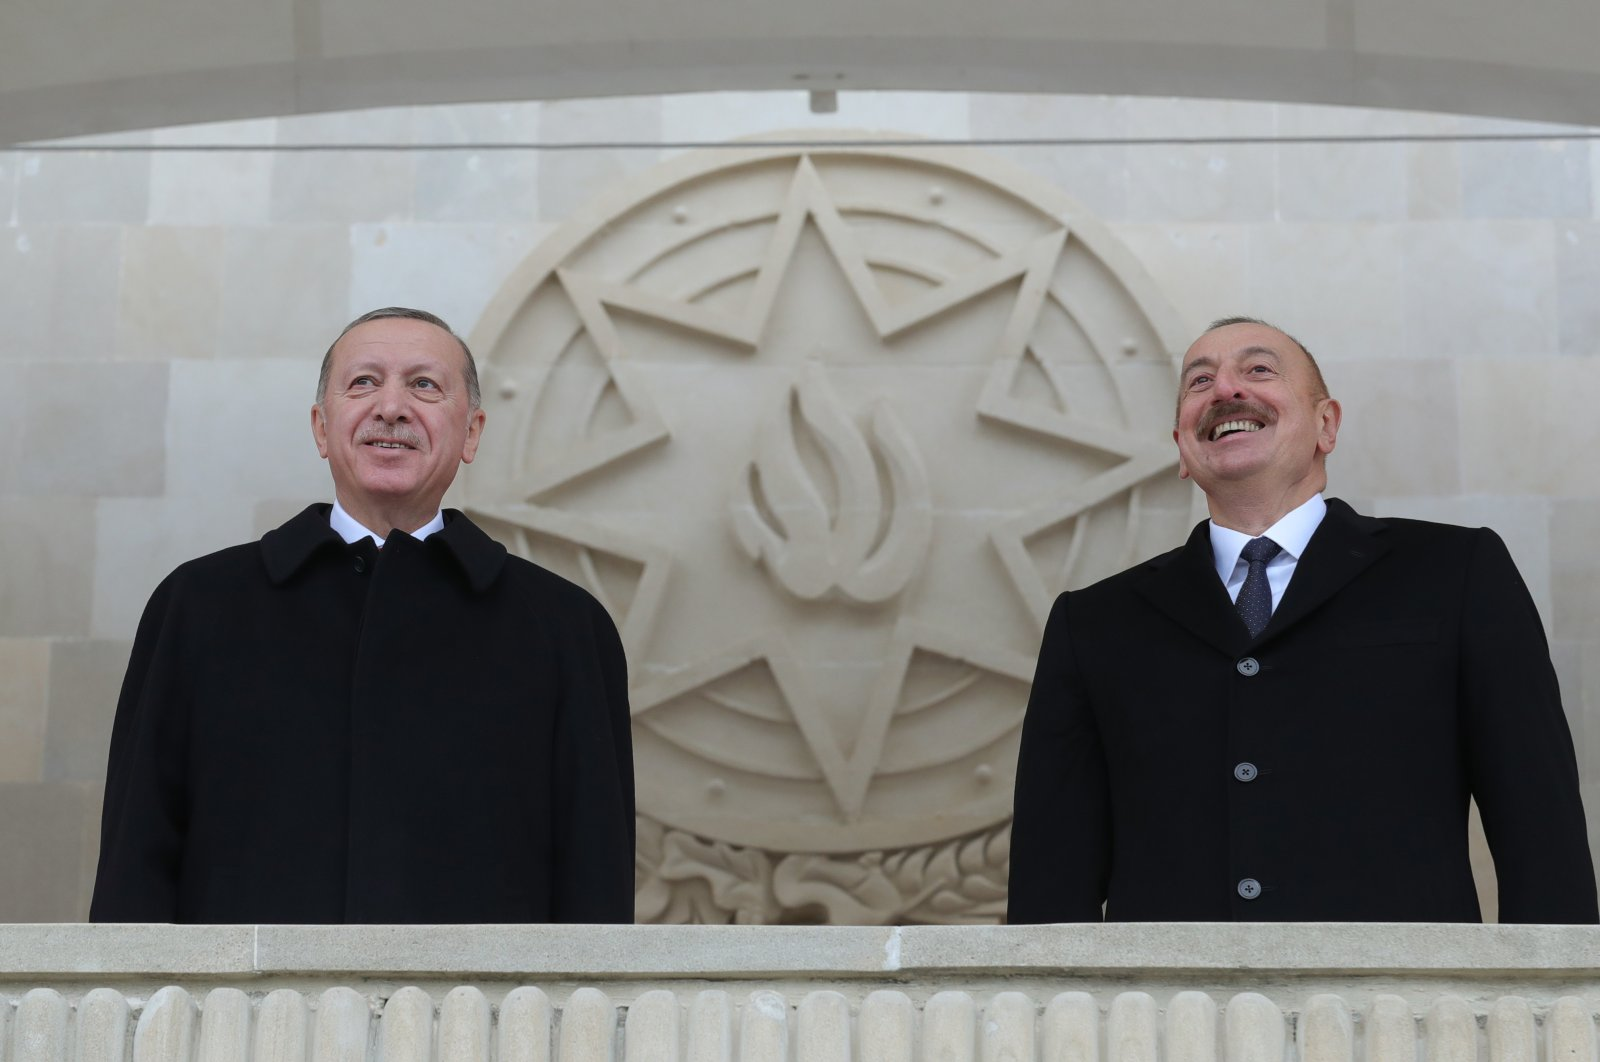 President Recep Tayyip Erdoğan (L) and his Azerbaijani counterpart Ilham Aliyev participate in a victory parade in Baku's Azadliq (Independence) Square to mark the liberation of the Karabakh territories from Armenian occupation, Azerbaijan, Dec. 10, 2020. (AA Photo)